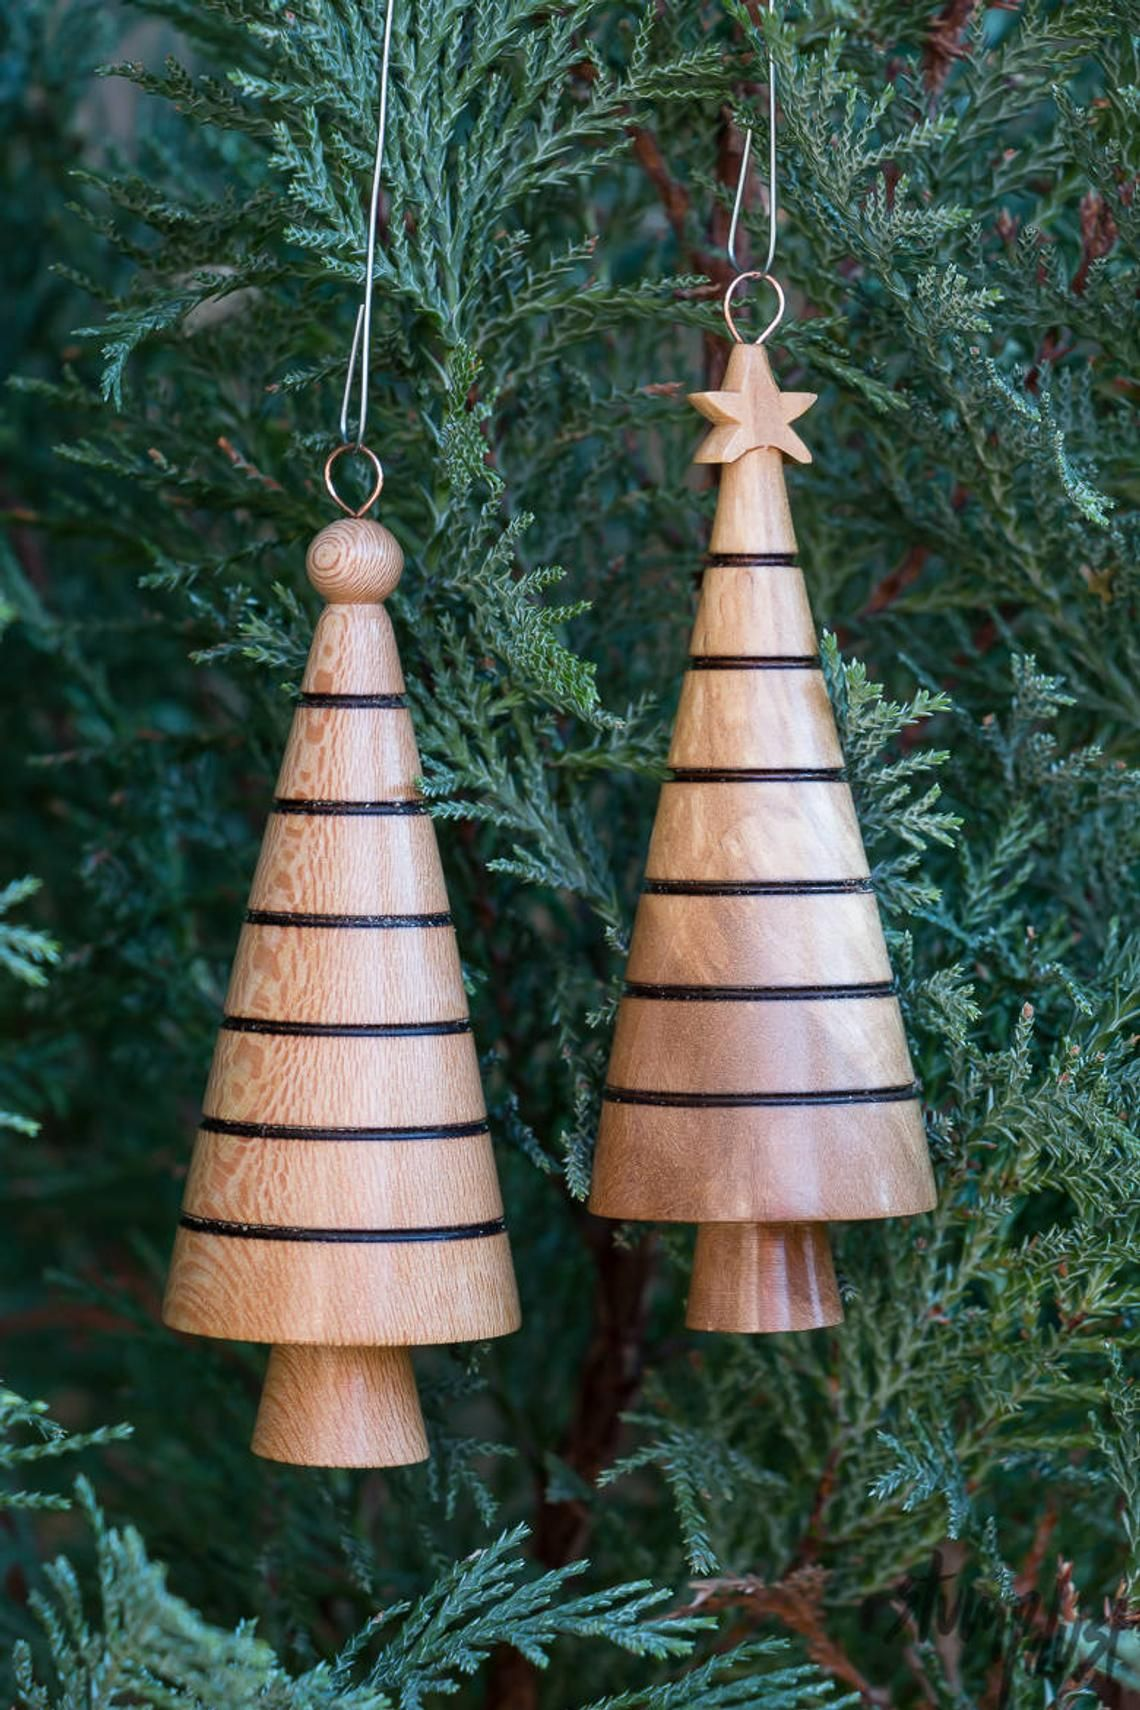 Hand Turned Christmas Tree Holiday Ornament Style 3 Wood Turning Wooden Christmas Ornaments Lathe Projects